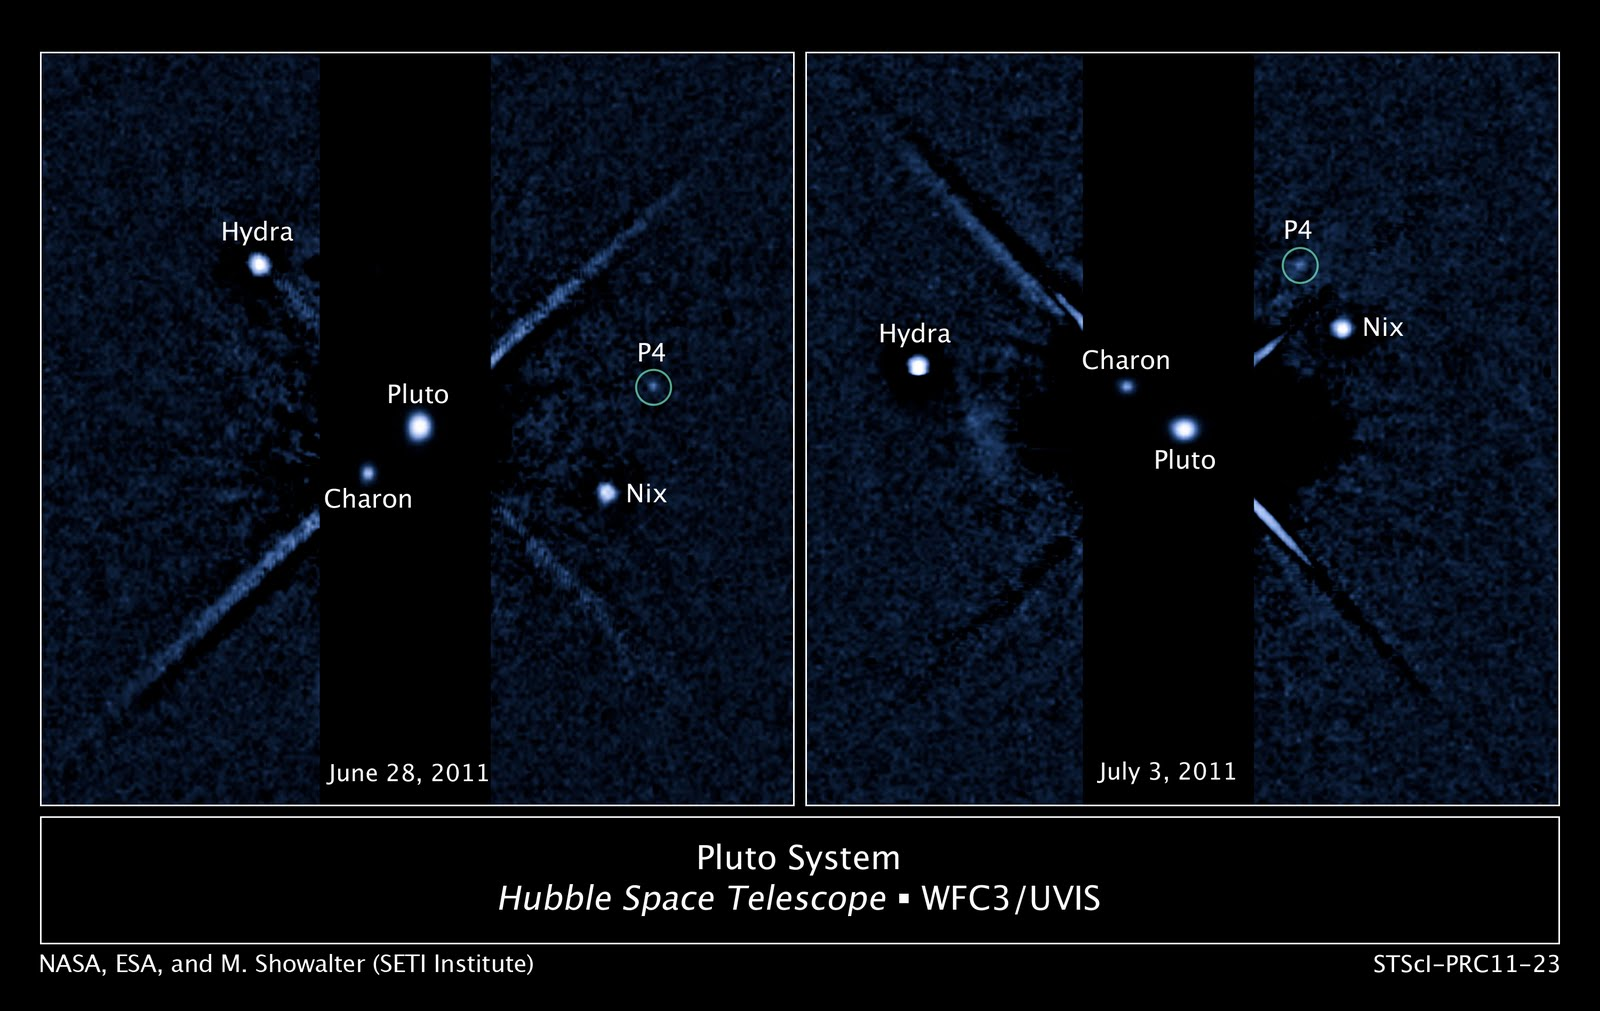 astronomers using the hubble space telescope discovered a fourth moon